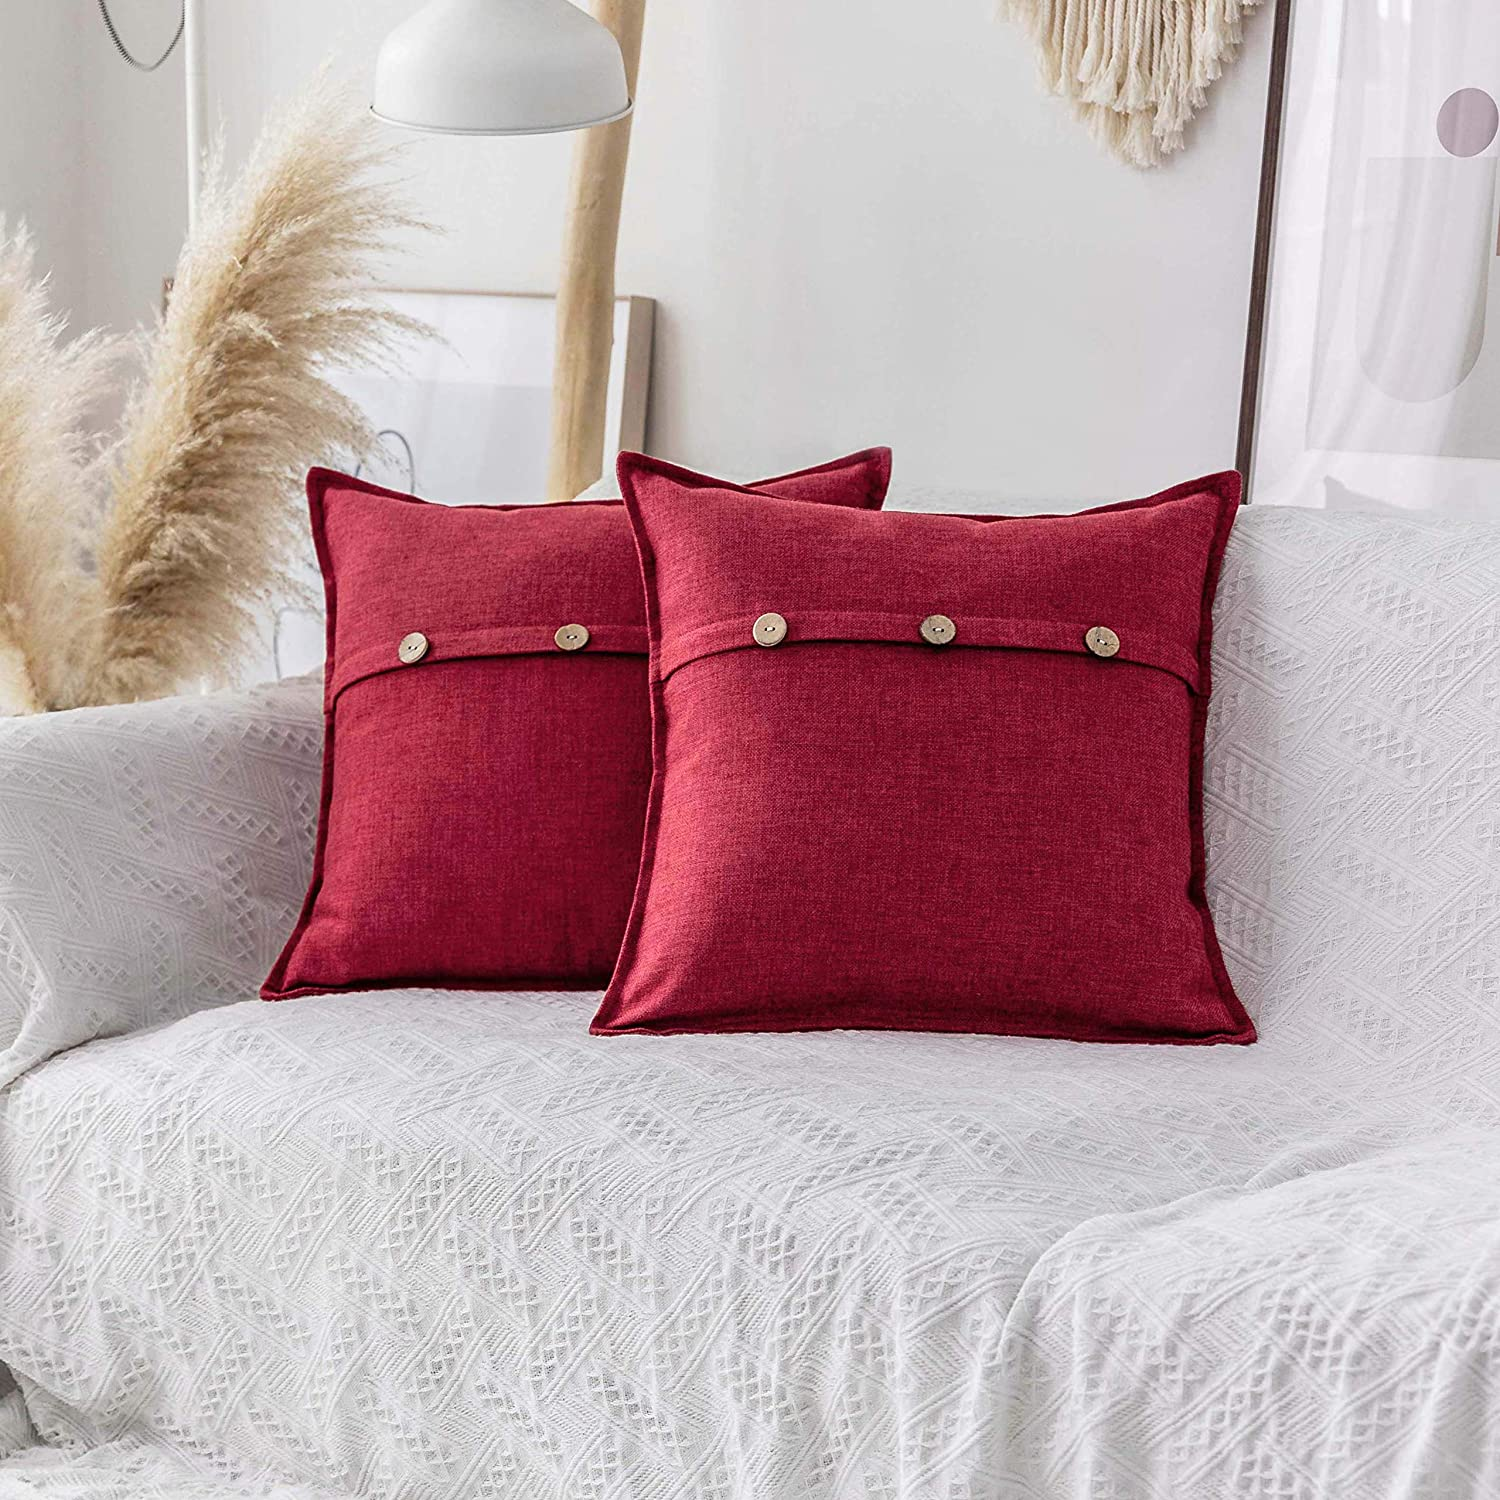 Home Brilliant Linen Textured Decorative Pillow Covers with Button Decoration Cushion Case Cover Sham for Sofa, 18x18 inches (30x50cm), Pack of 2, Burgundy Red